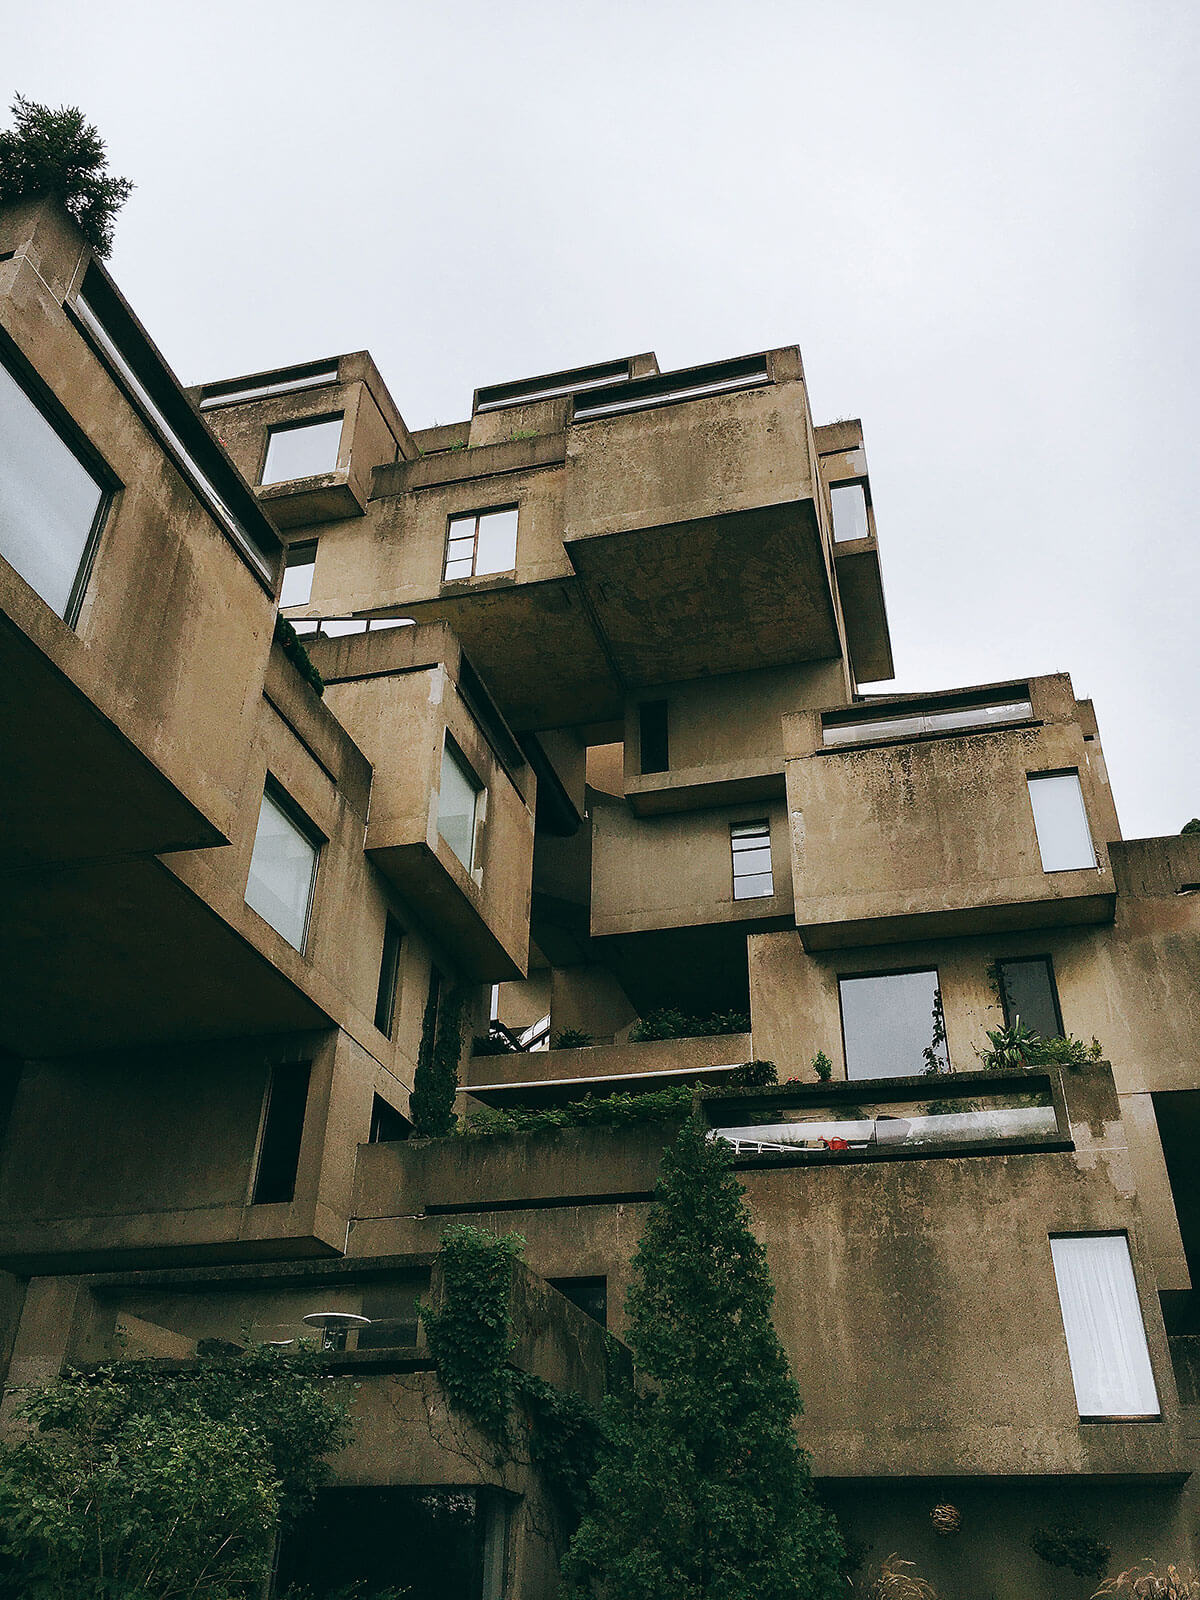 habitat-67-montreal © Will Travel for Food